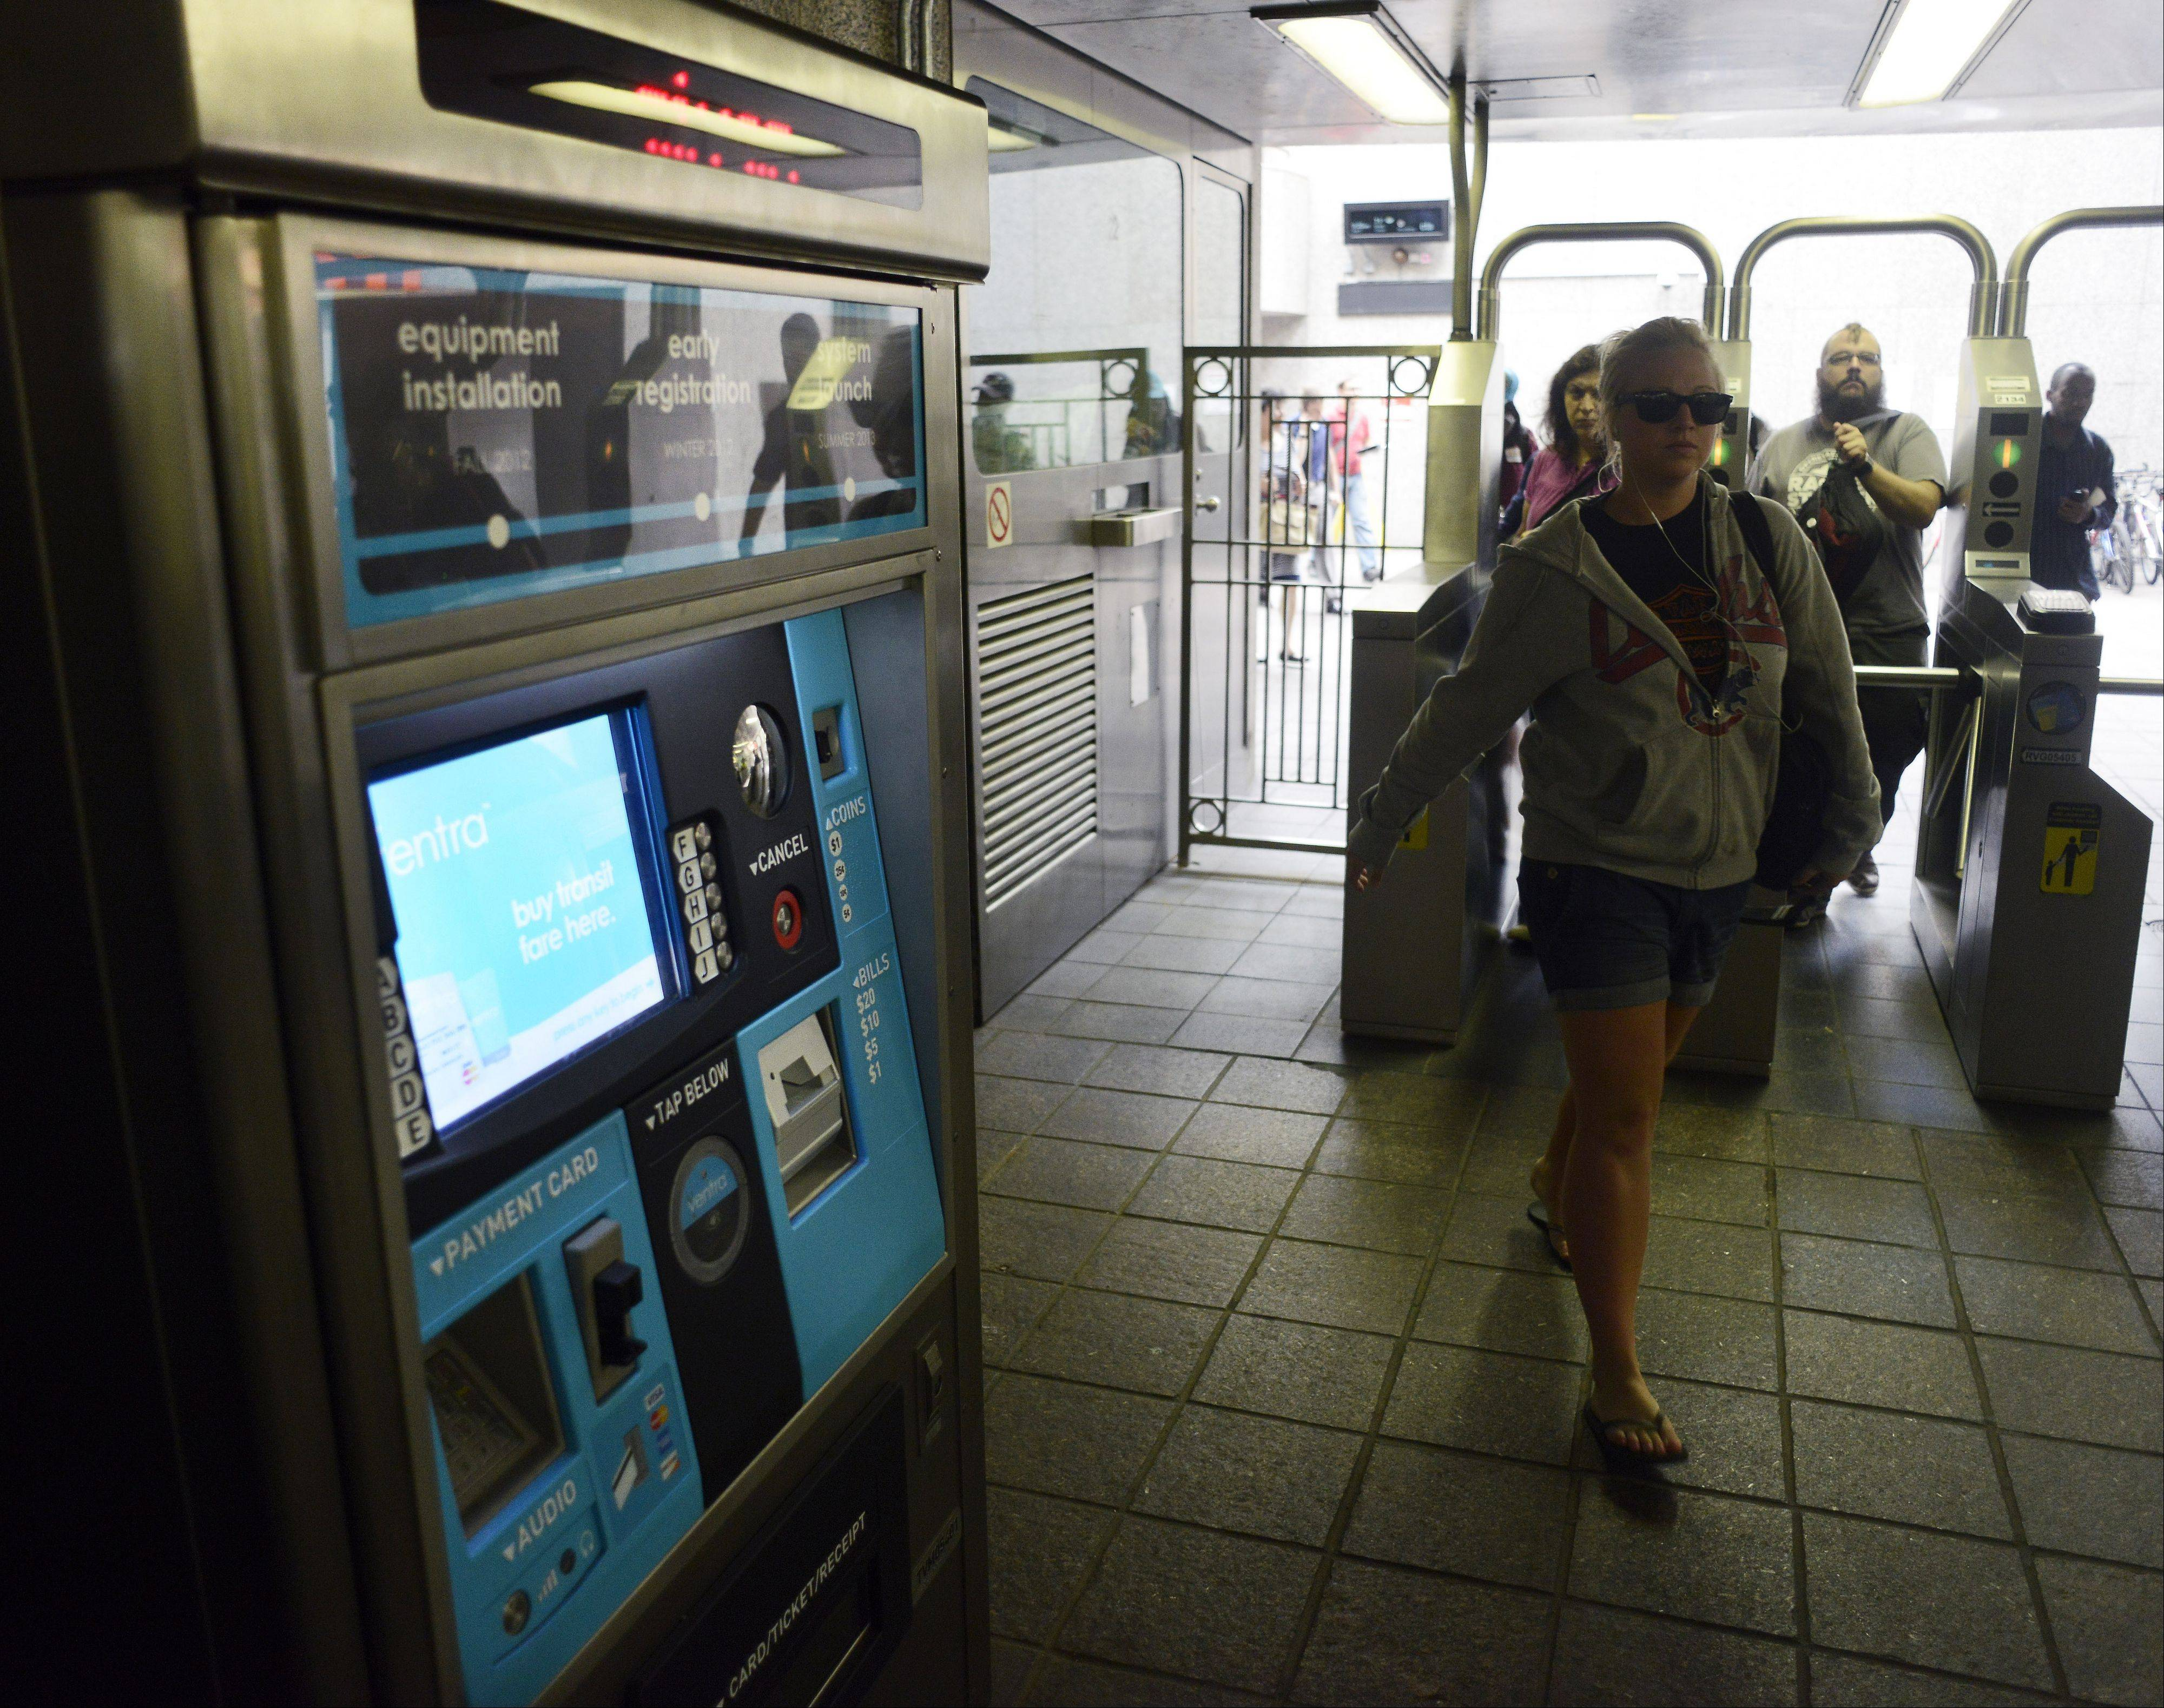 JOE LEWNARD/jlewnard@dailyherald.com A machine for purchasing Ventra fares sits in the Rosemont CTA station.